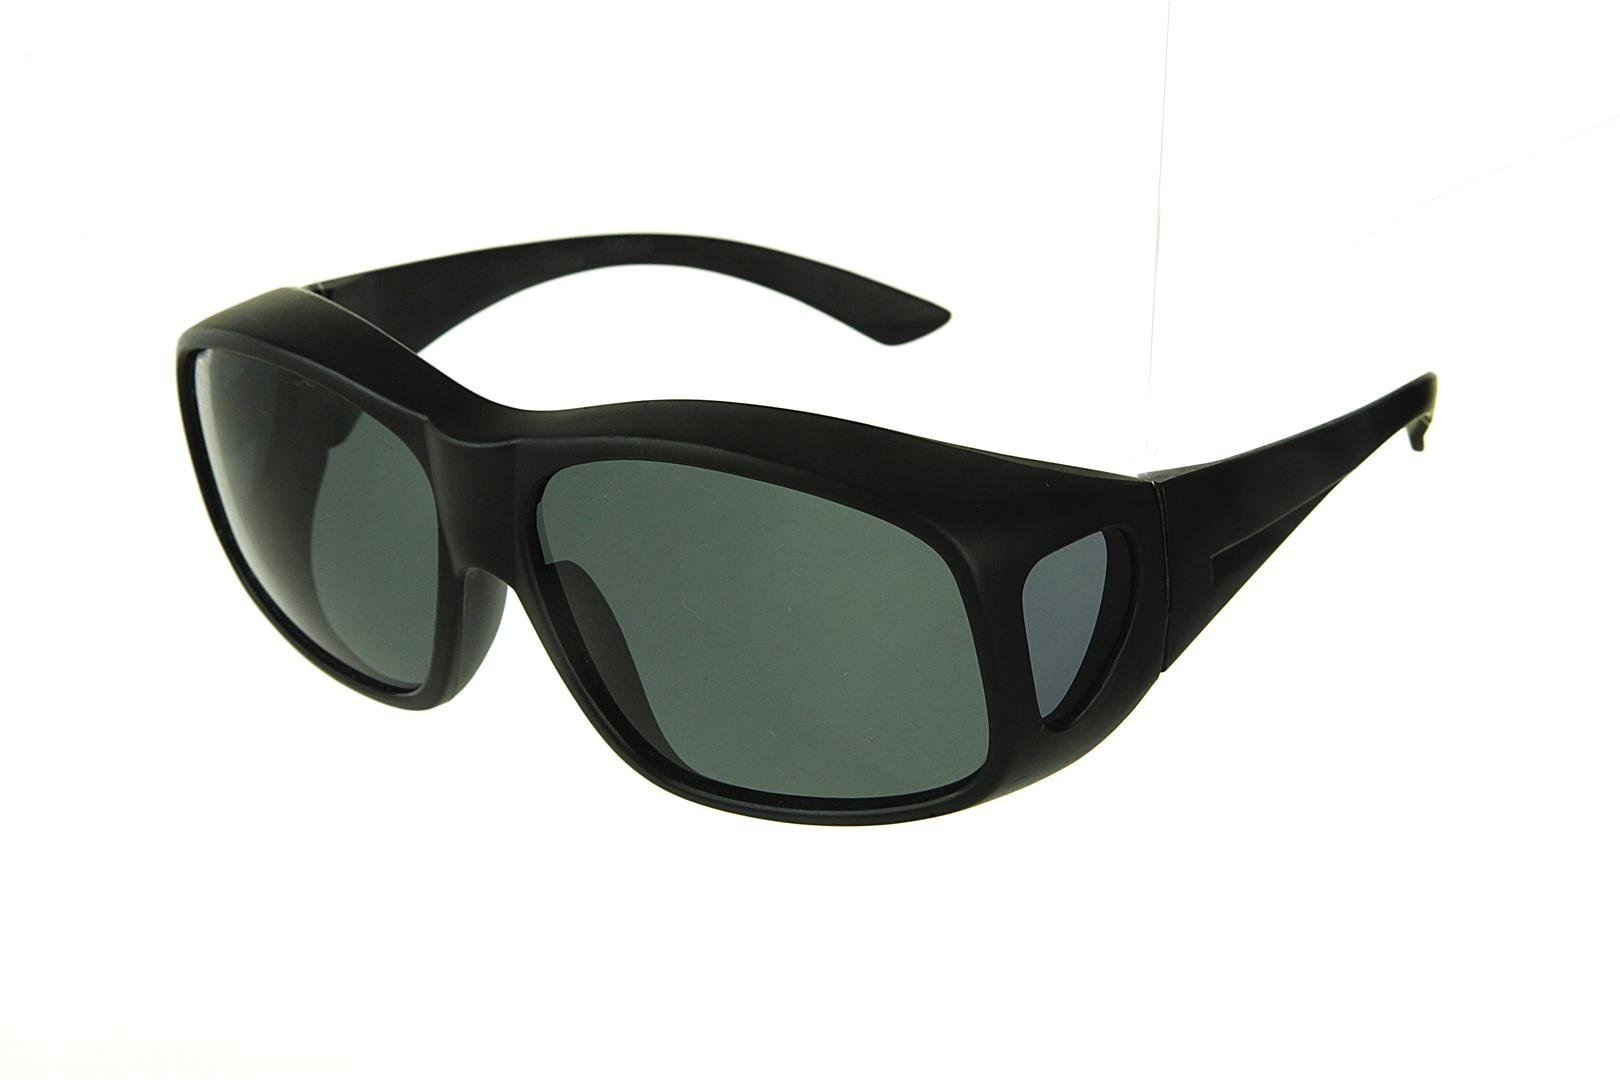 LensCovers Prescription Glasses Sunglasses Polarized